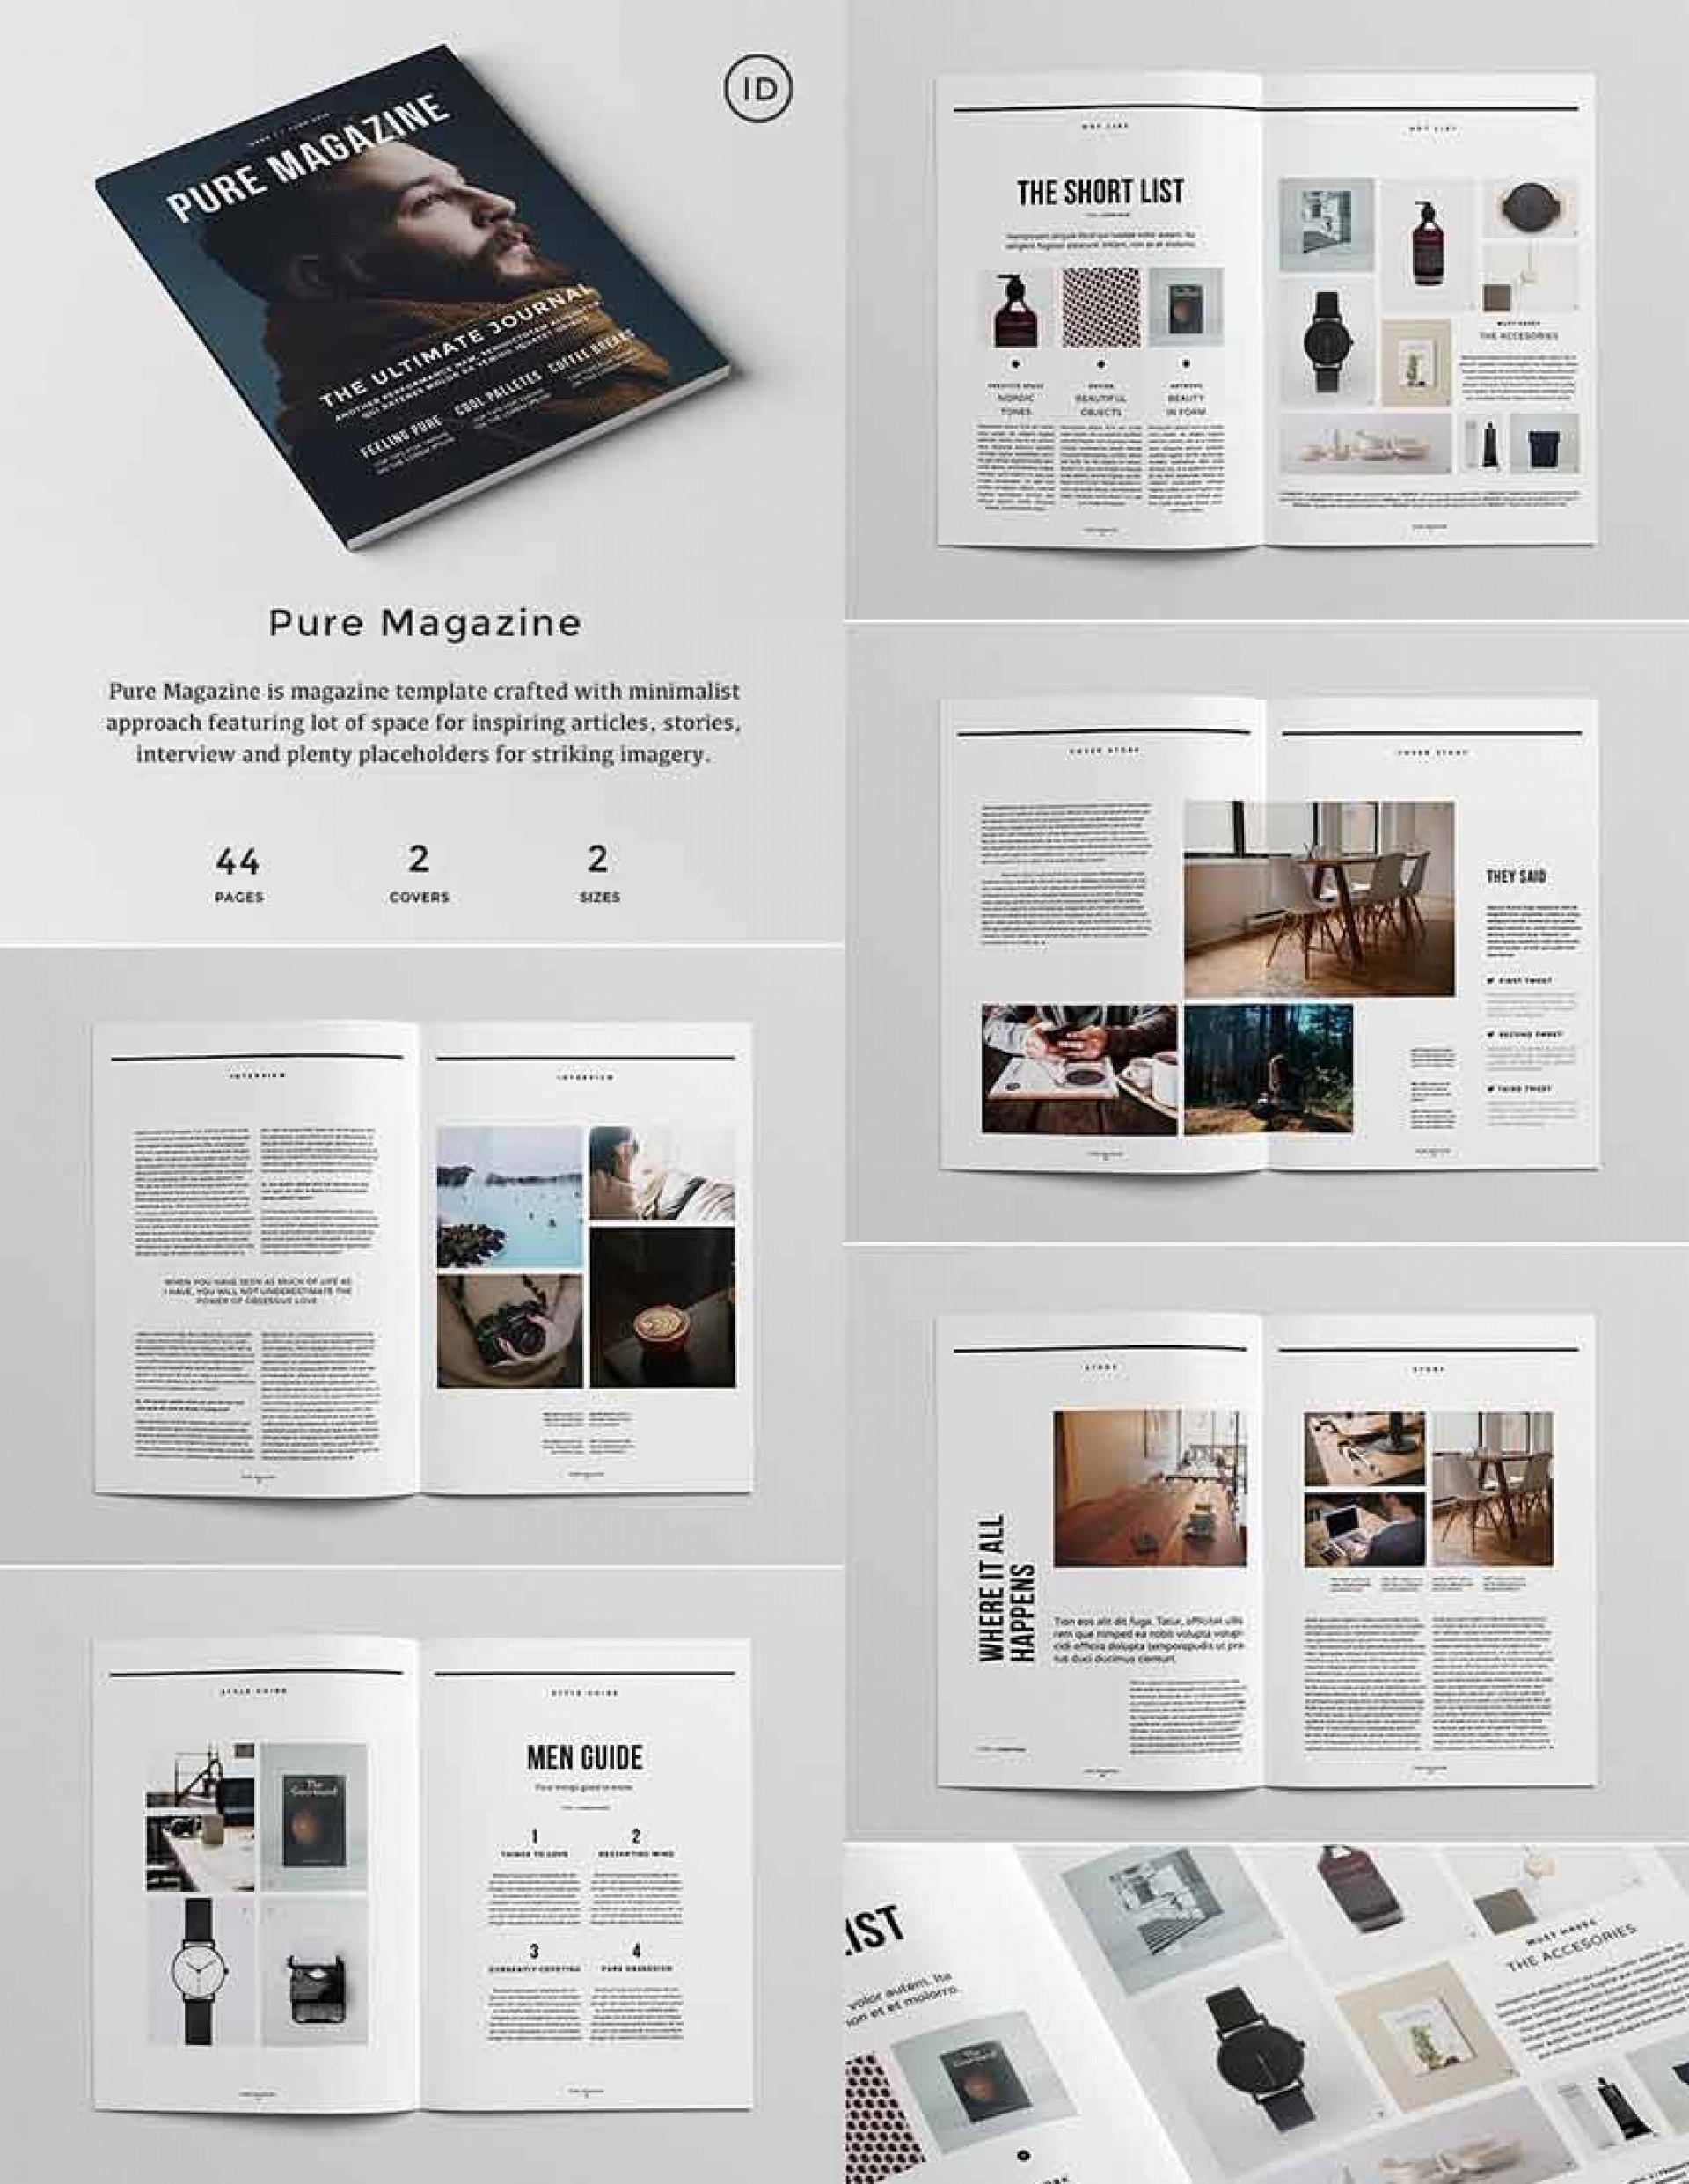 008 Simple Indesign Book Layout Template Sample  Free Download1920